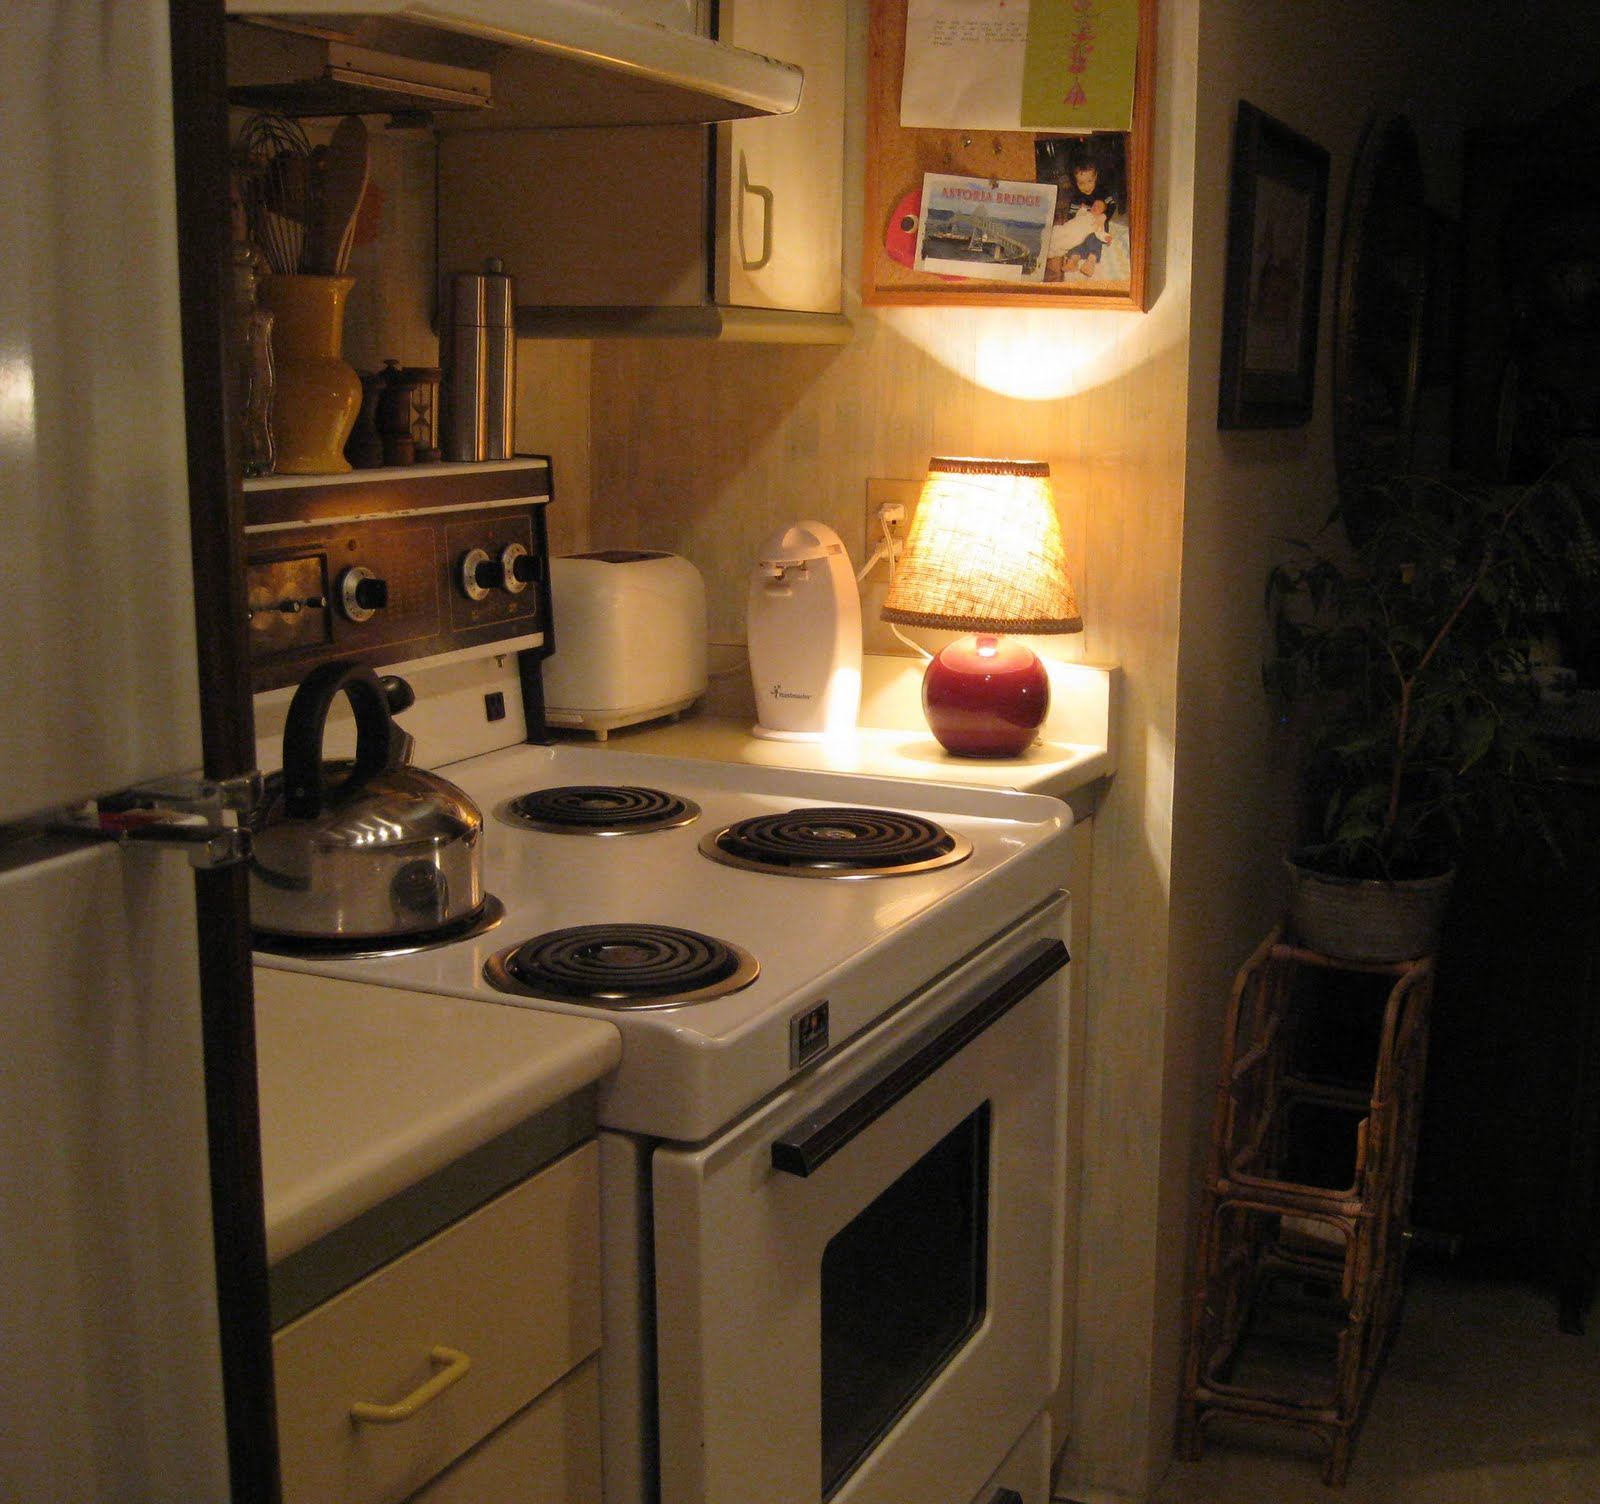 World Kitchen: A Majority Of Two: The World's Smallest Kitchen